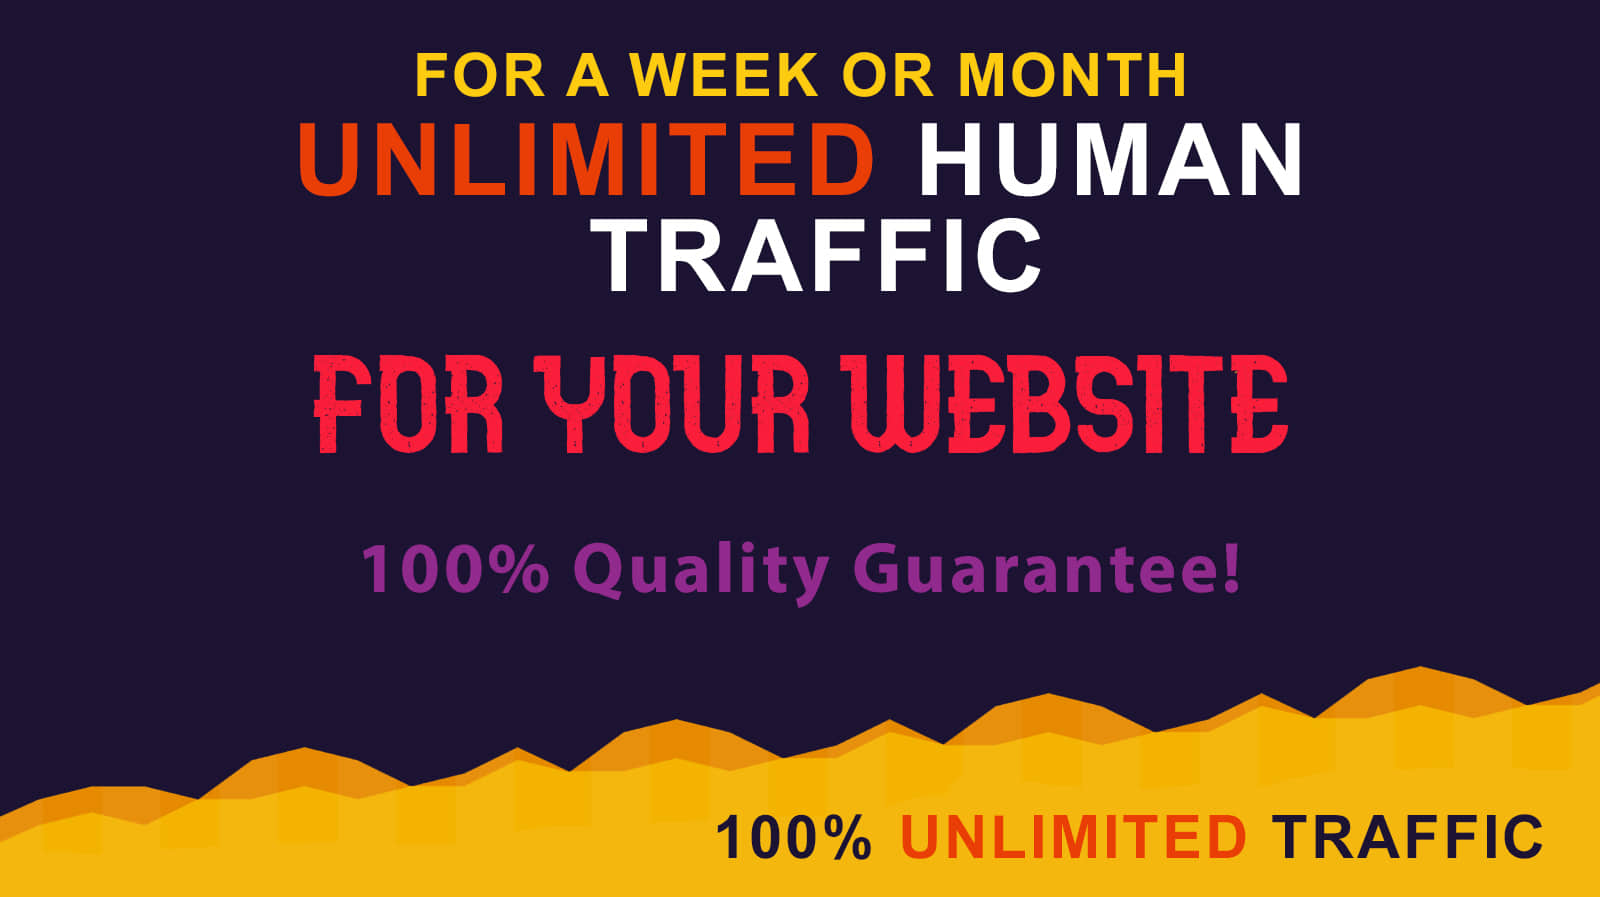 Unlimited real human traffic for a week or month